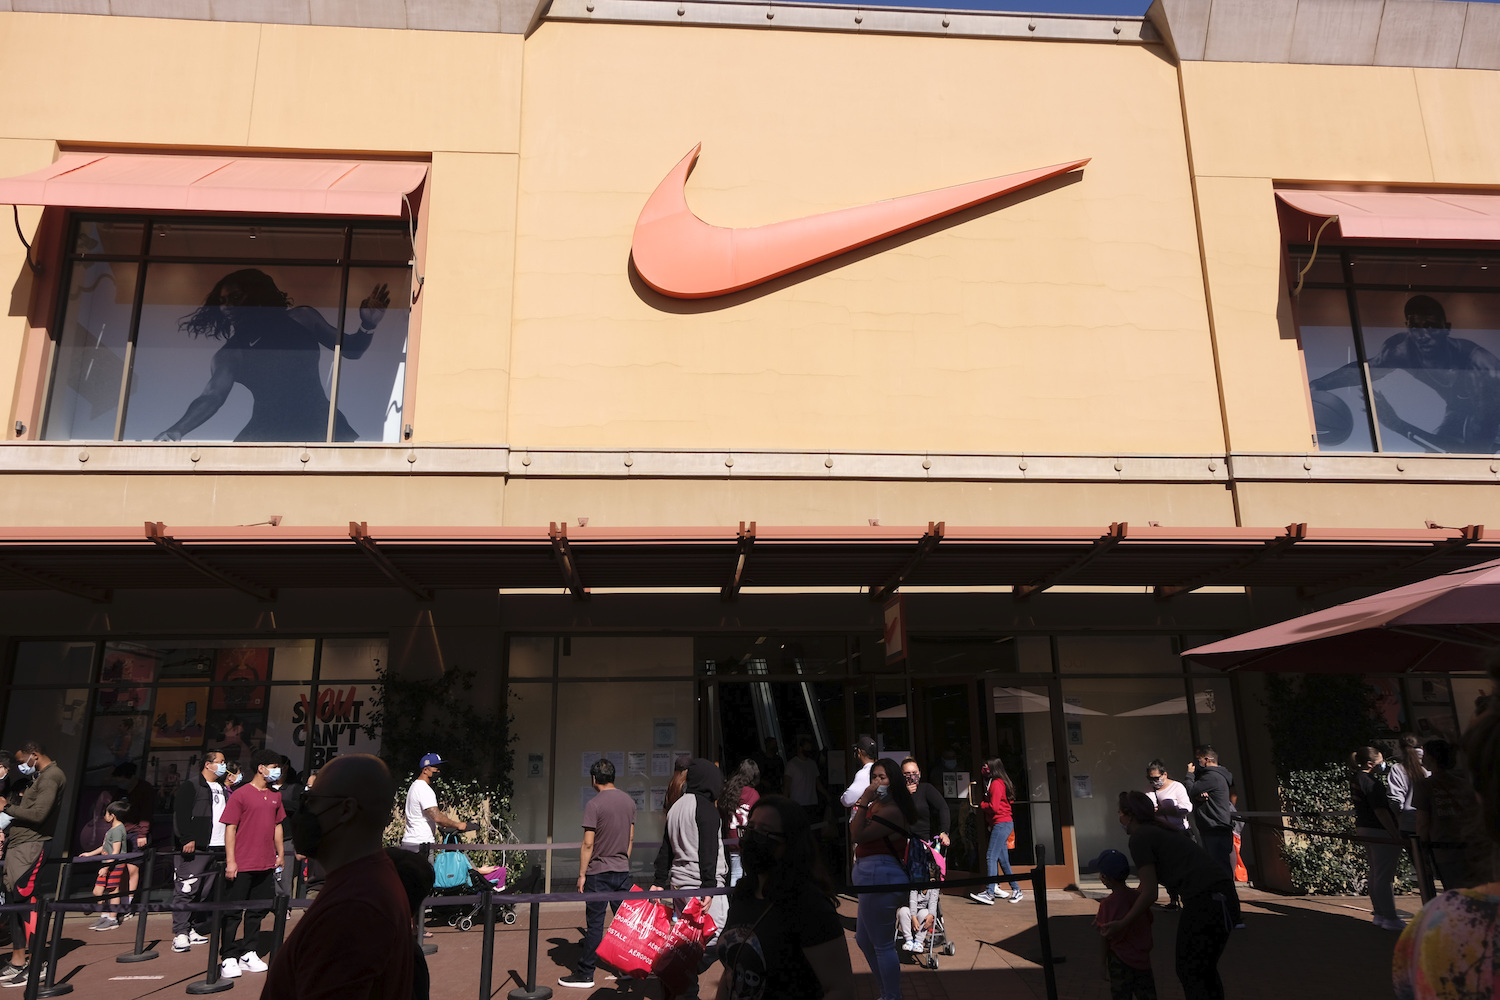 While third-quarter revenues at Nike were down 1 percent to $10.4 billion, port congestion tanked North American sales by 10 percent.